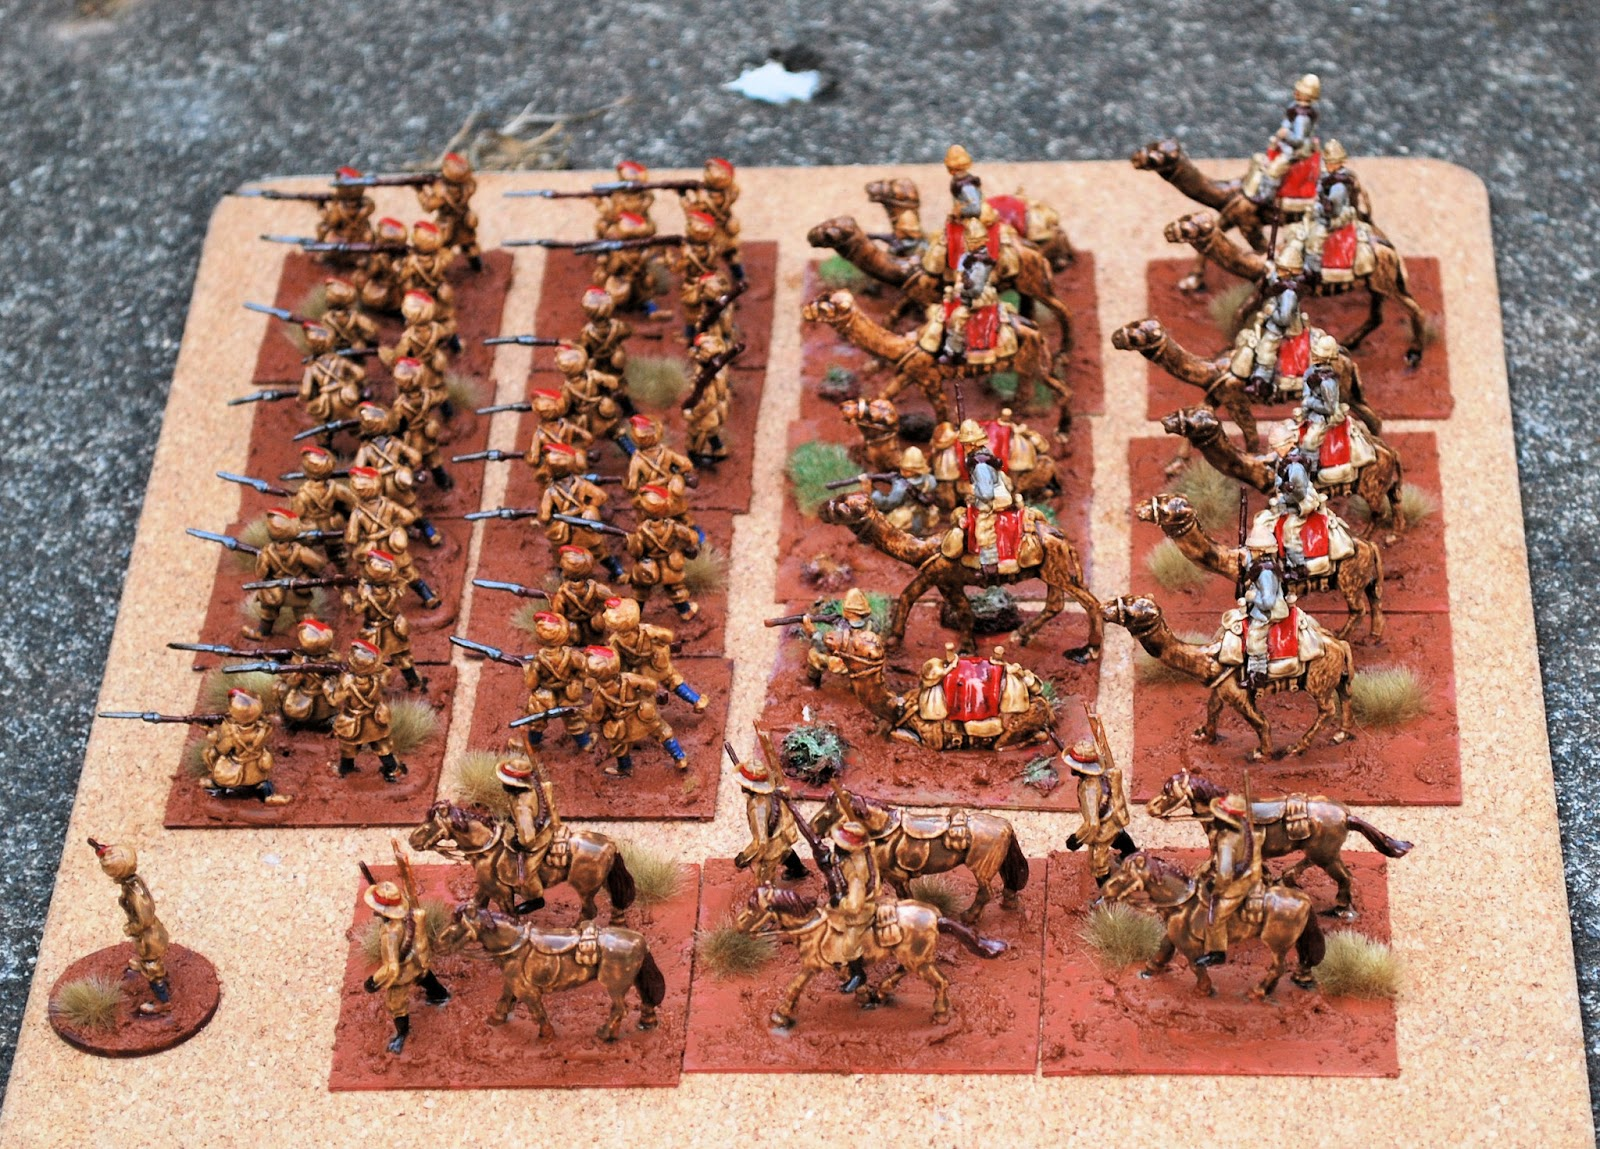 John's Toy Soldiers: I Say Carruthers! - Black Powder